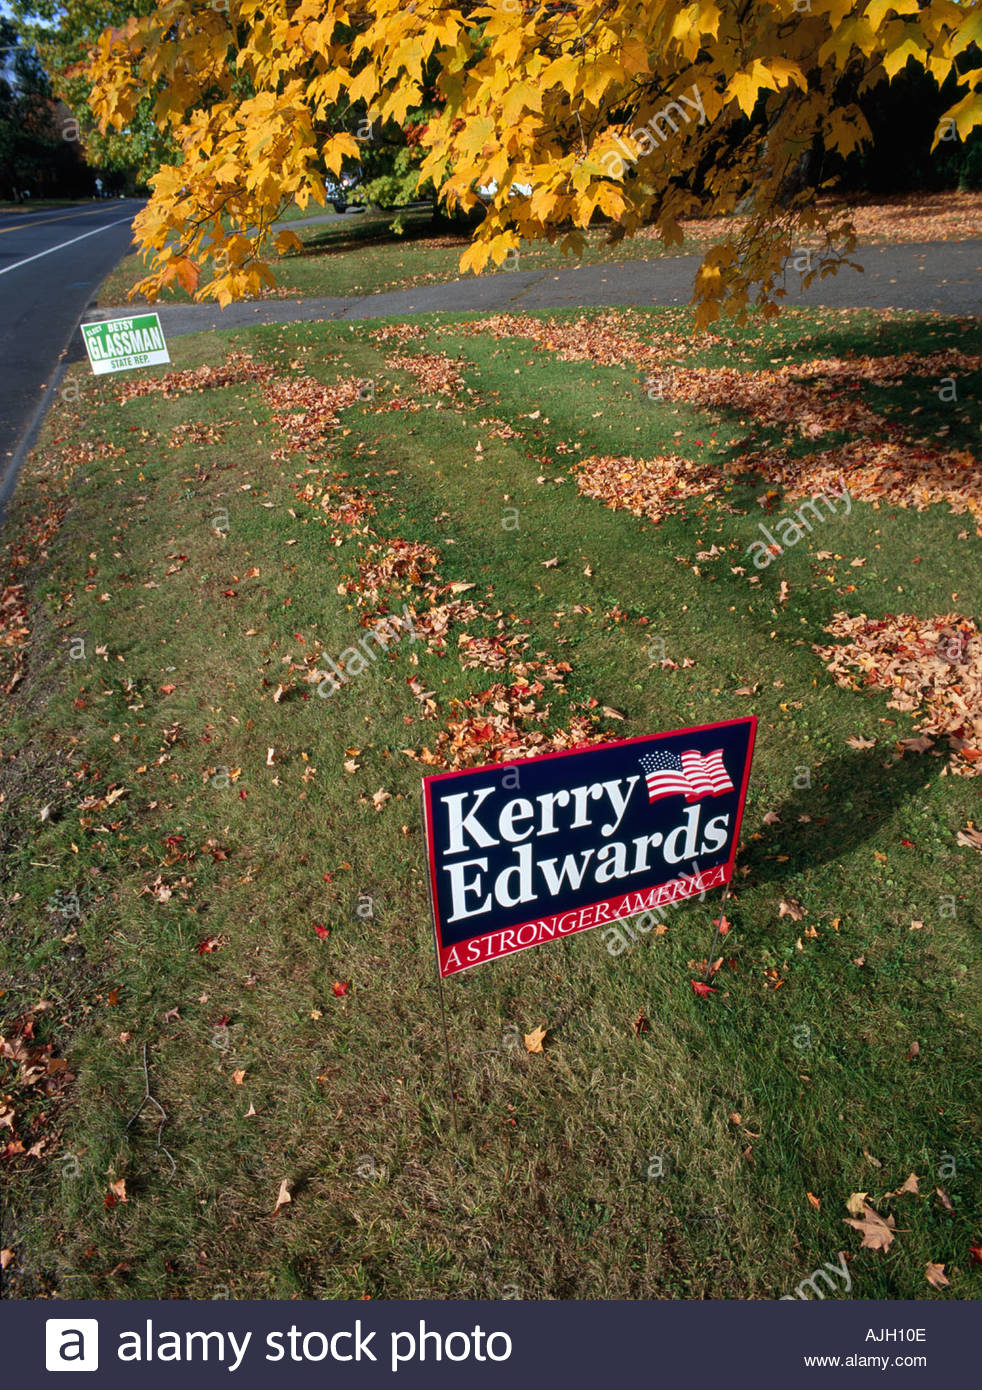 Political billboard during US presidential election Connecticut USA Oct 2004 - Stock Image